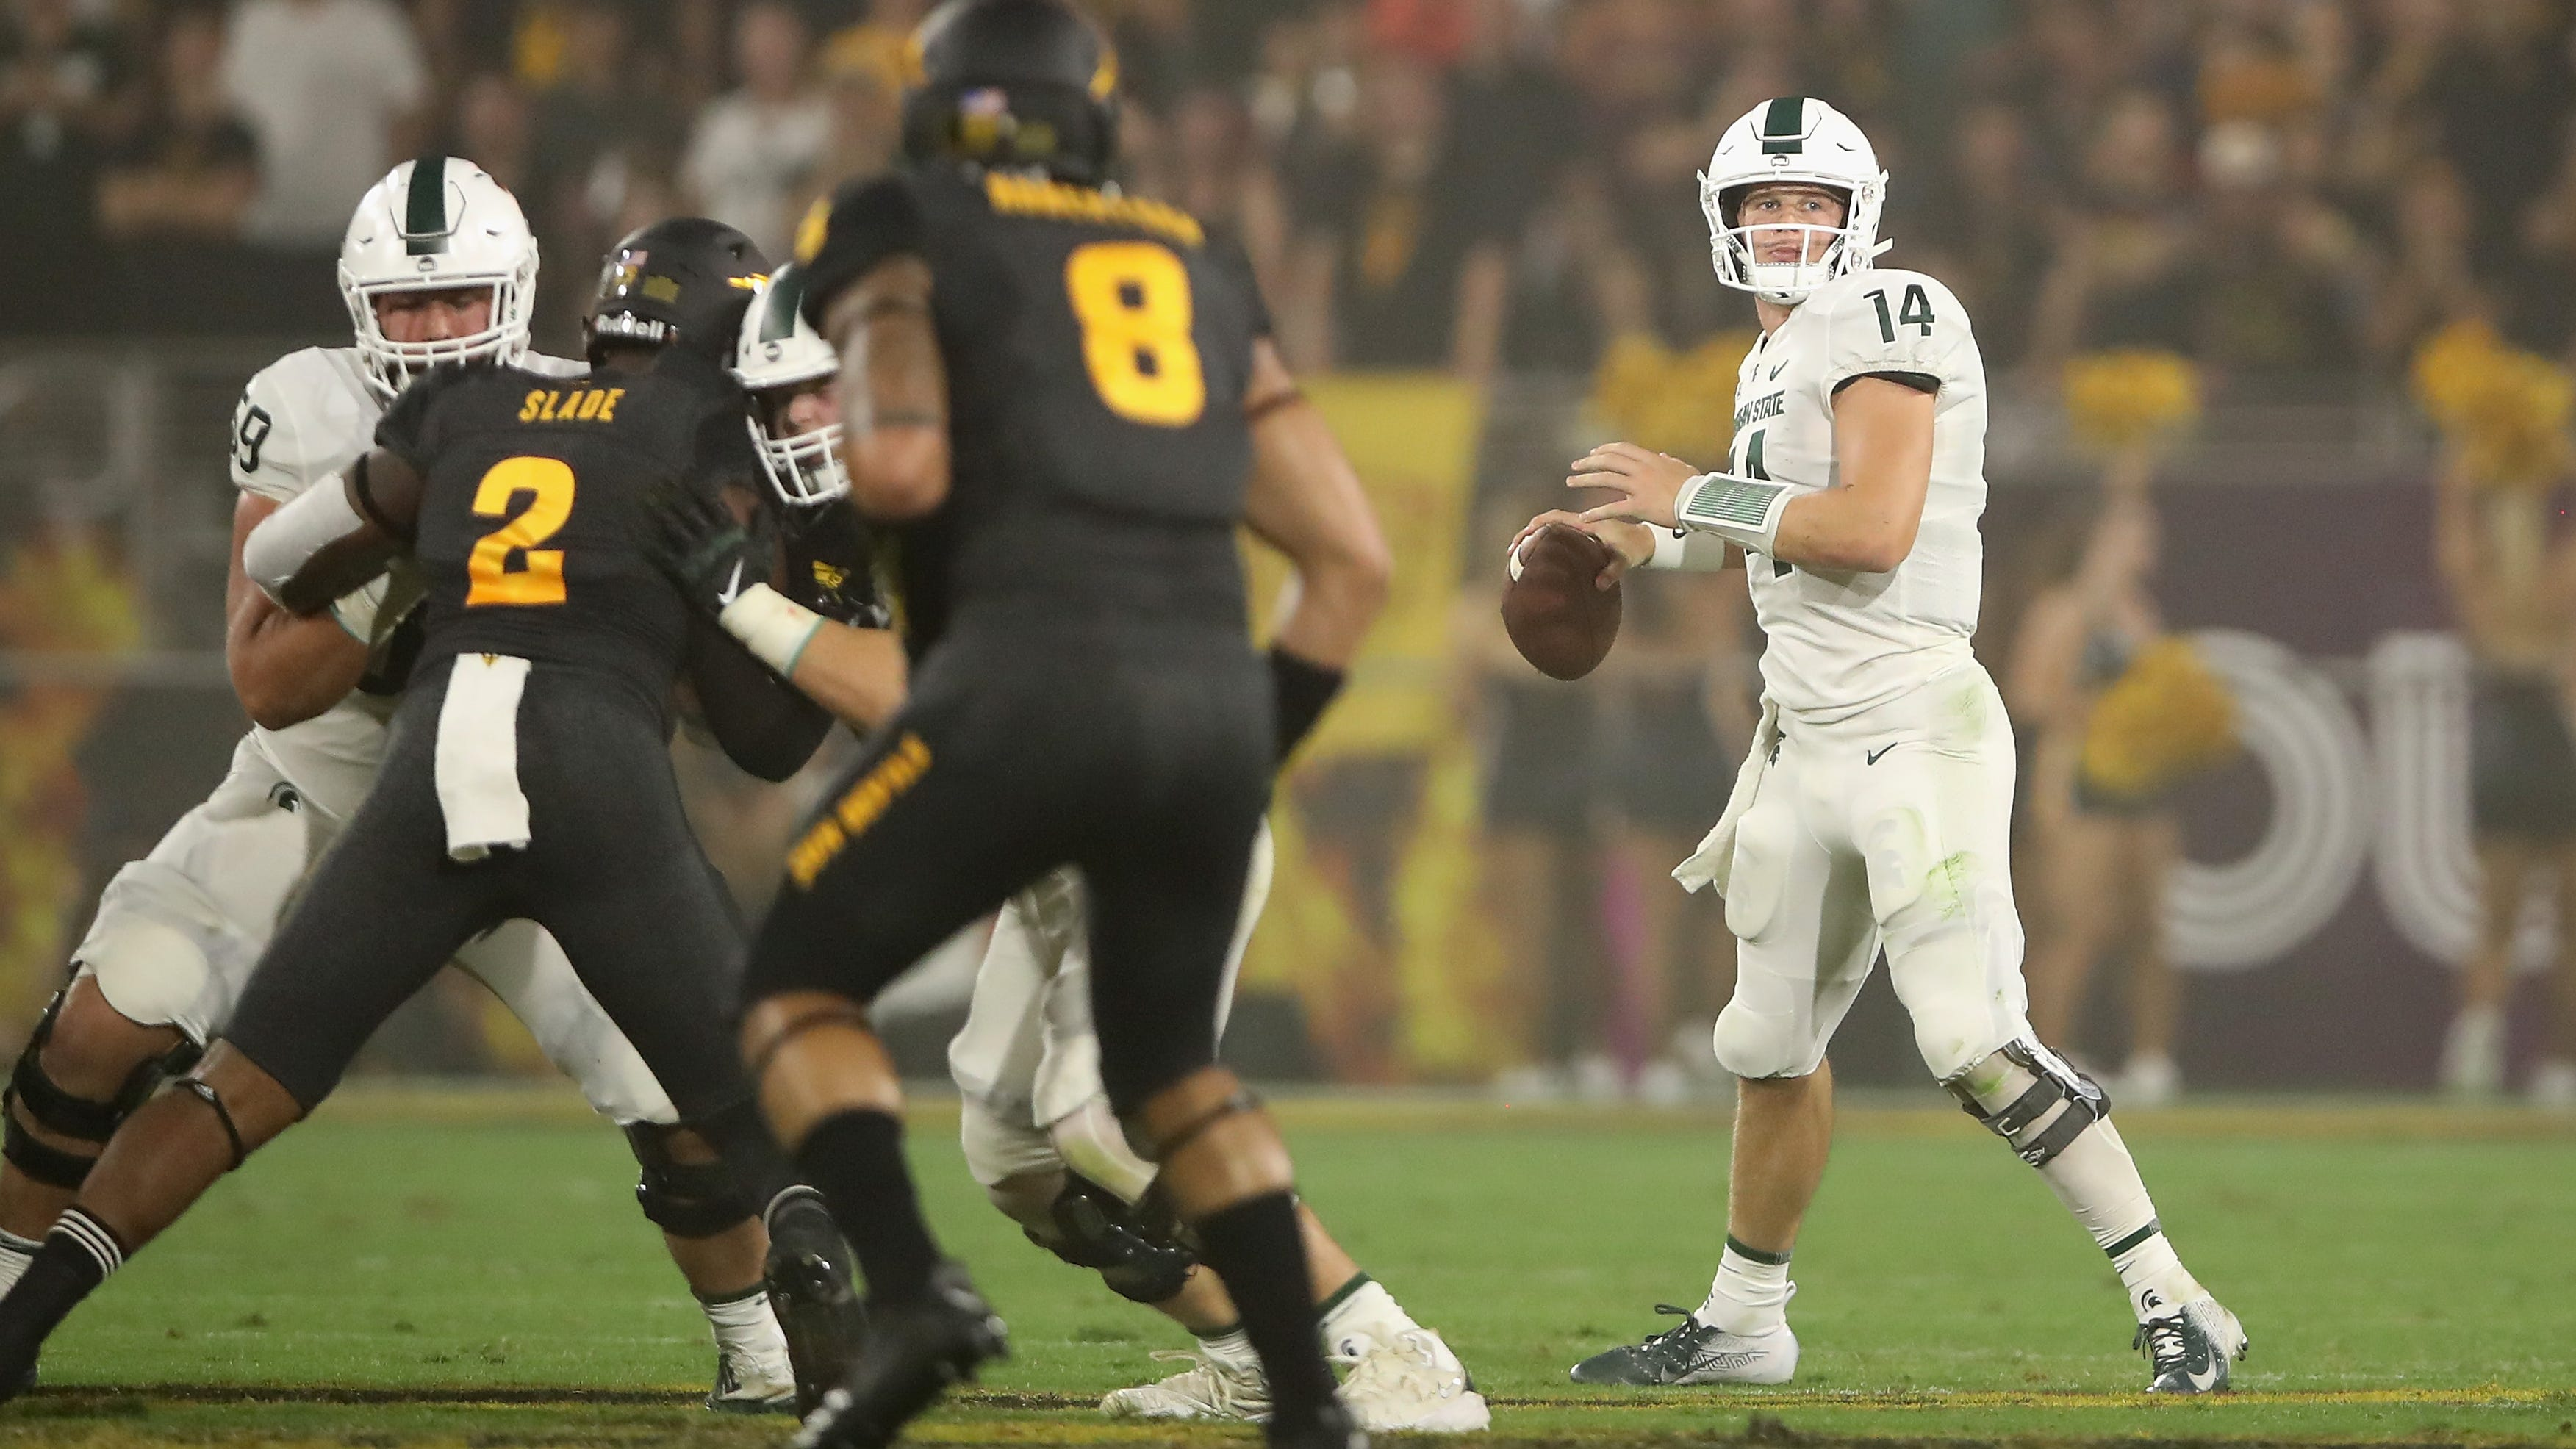 Brian Lewerke and the Michigan State Spartans are favored by 4.5 points against Indiana.